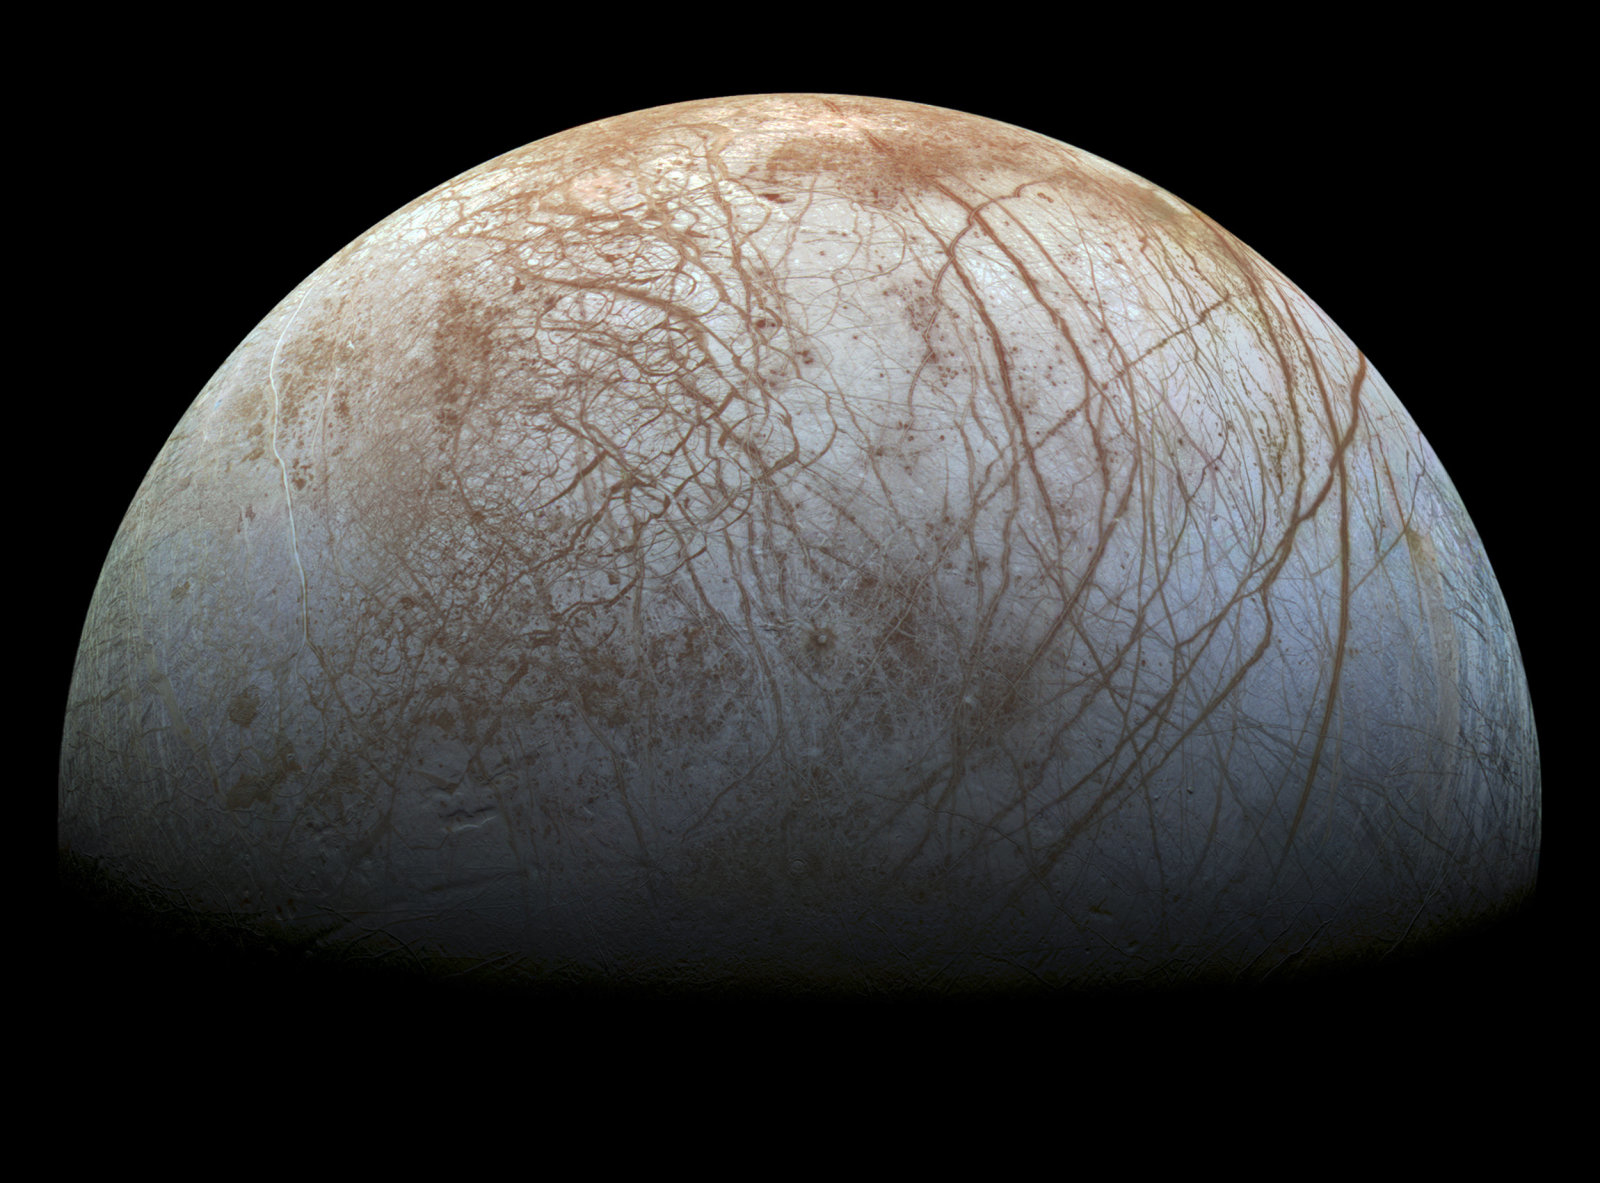 A new mosaic made from images taken by NASA's Galileo spacecraft in the late 1990's is shown of the surface of Jupiter's icy moon, Europa, as it looms large in this newly-reprocessed, higher resolution color view in this handout provided by NASA November 24, 2014. This newer version was created from images assembled into a realistic color view of the surface that approximates how Europa would appear to the human eye. NASA/JPL-Caltech/SETI Institue/Handout via Reuters   (OUTERSPACE - Tags: SCIENCE TECHNOLOGY)ATTENTION EDITORS - FOR EDITORIAL USE ONLY. NOT FOR SALE FOR MARKETING OR ADVERTISING CAMPAIGNS. THIS PICTURE WAS PROVIDED BY A THIRD PARTY. REUTERS IS UNABLE TO INDEPENDENTLY VERIFY THE AUTHENTICITY, CONTENT, LOCATION OR DATE OF THIS IMAGE. THIS PICTURE IS DISTRIBUTED EXACTLY AS RECEIVED BY REUTERS, AS A SERVICE TO CLIENTS